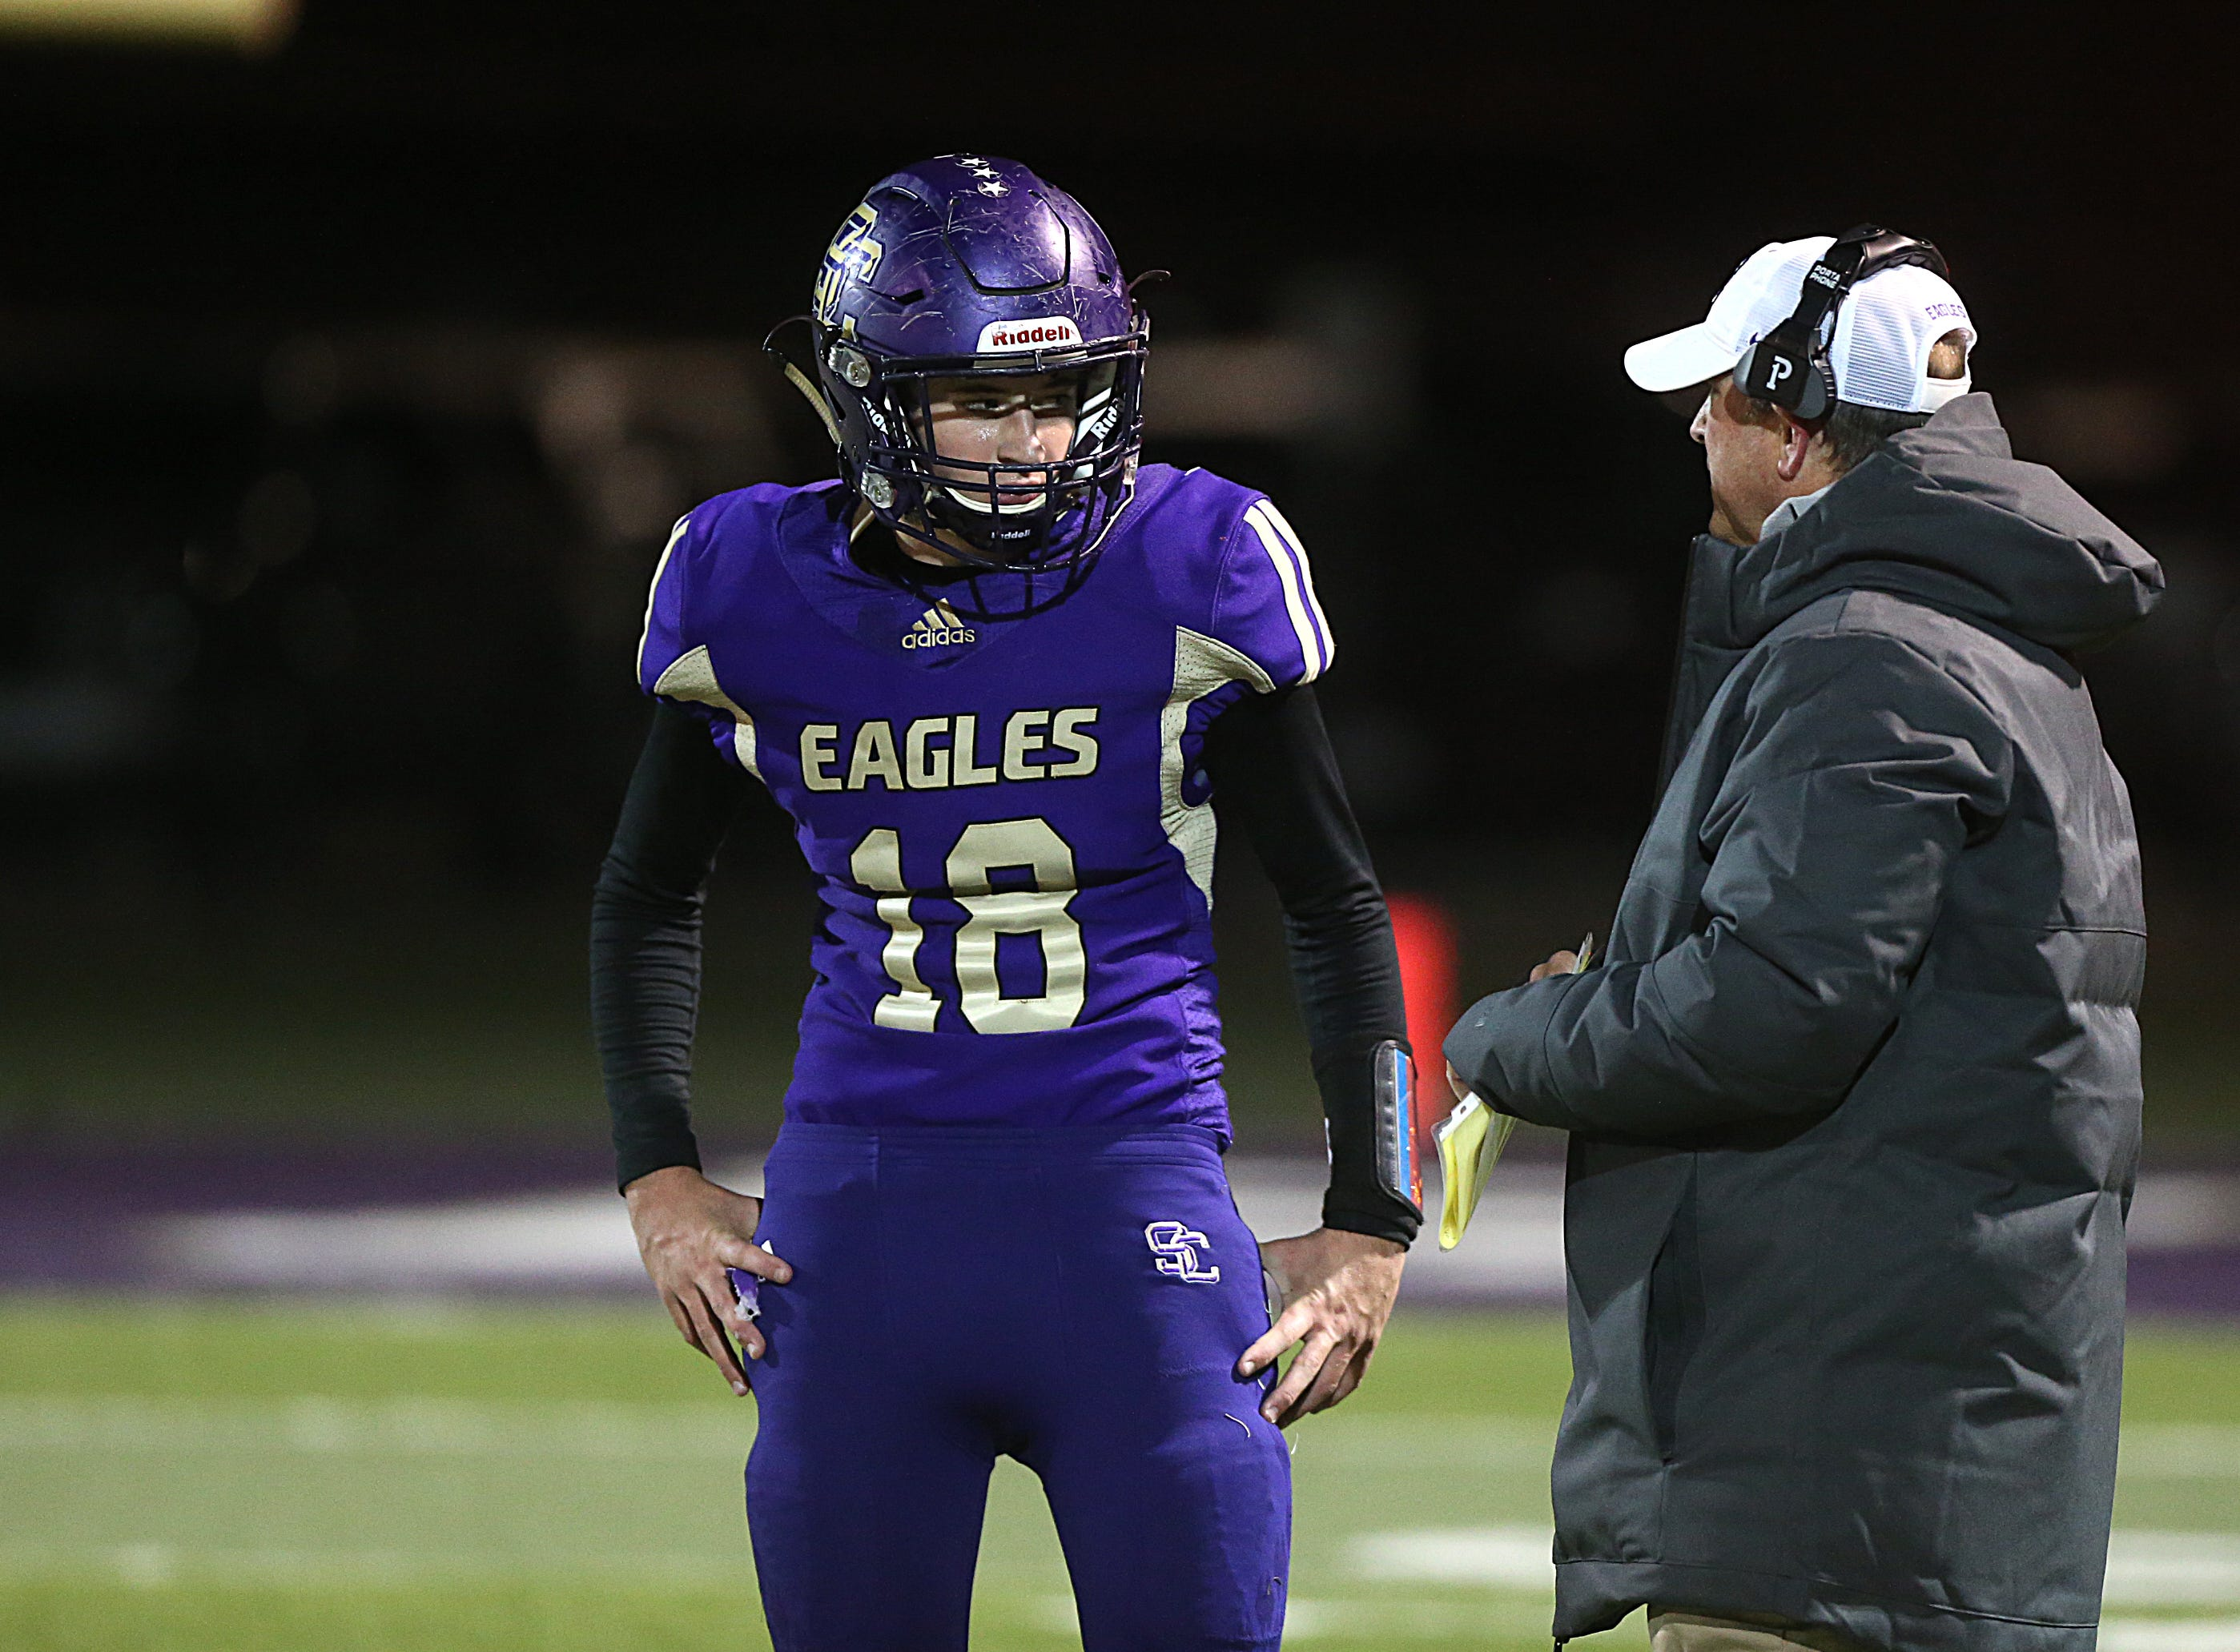 Sterling City's Hudson Cox (#18) talks with one of his coaches Friday, Nov. 9, 2018 during their game against Garden City.